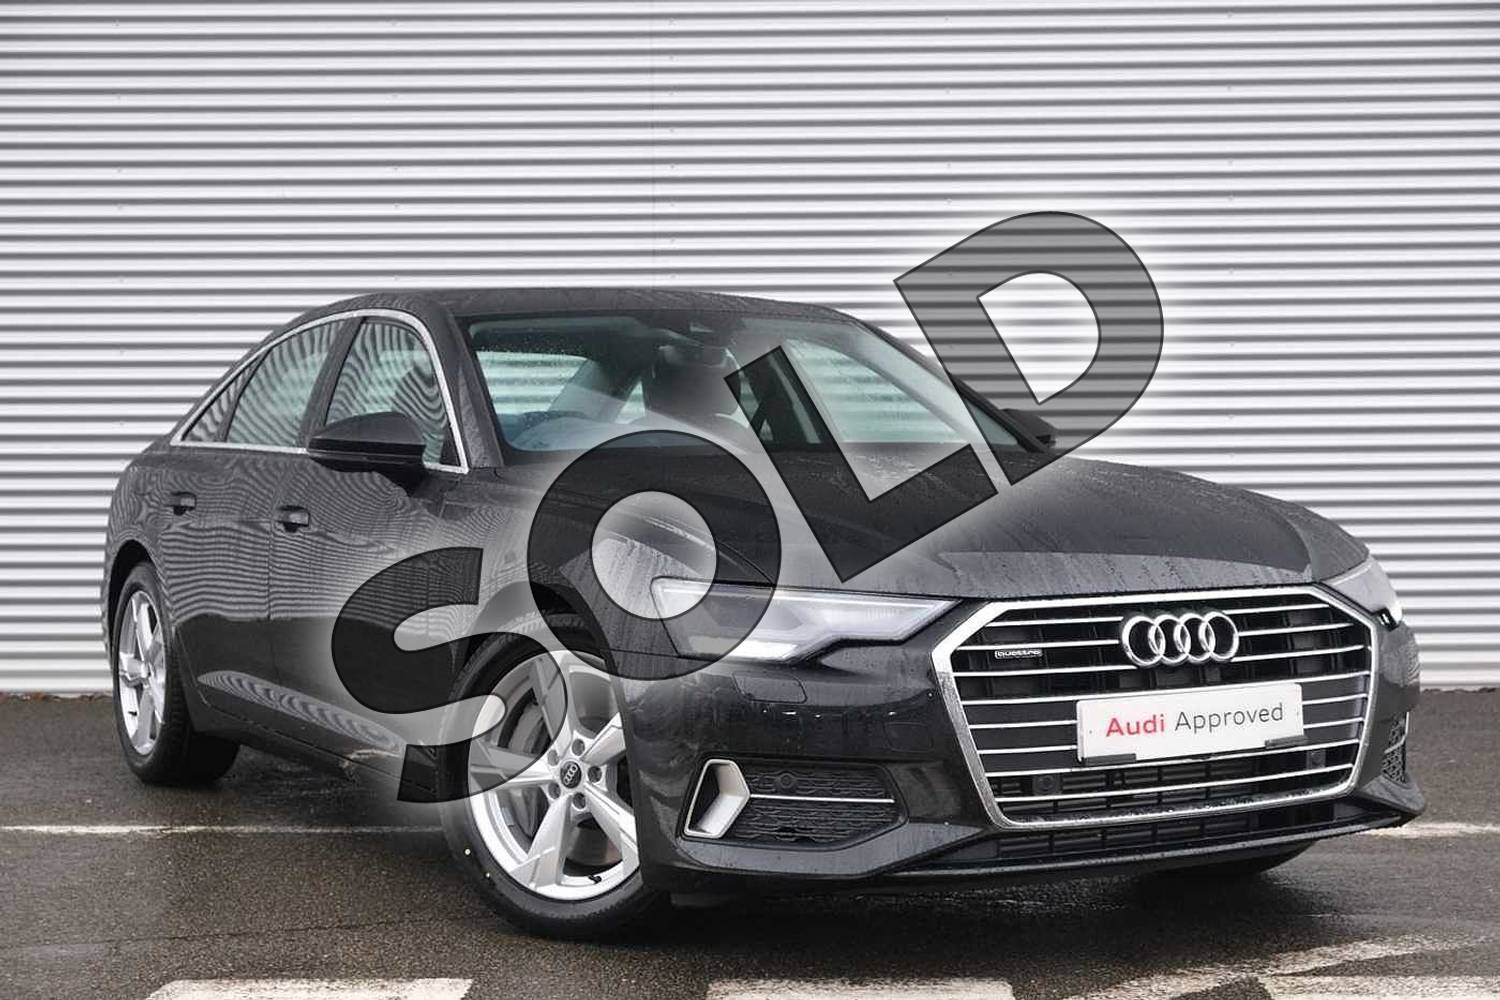 2020 Audi A6 Saloon 50 TFSI e Quattro Sport 4dr S Tronic in Vesuvius Grey Metallic at Coventry Audi